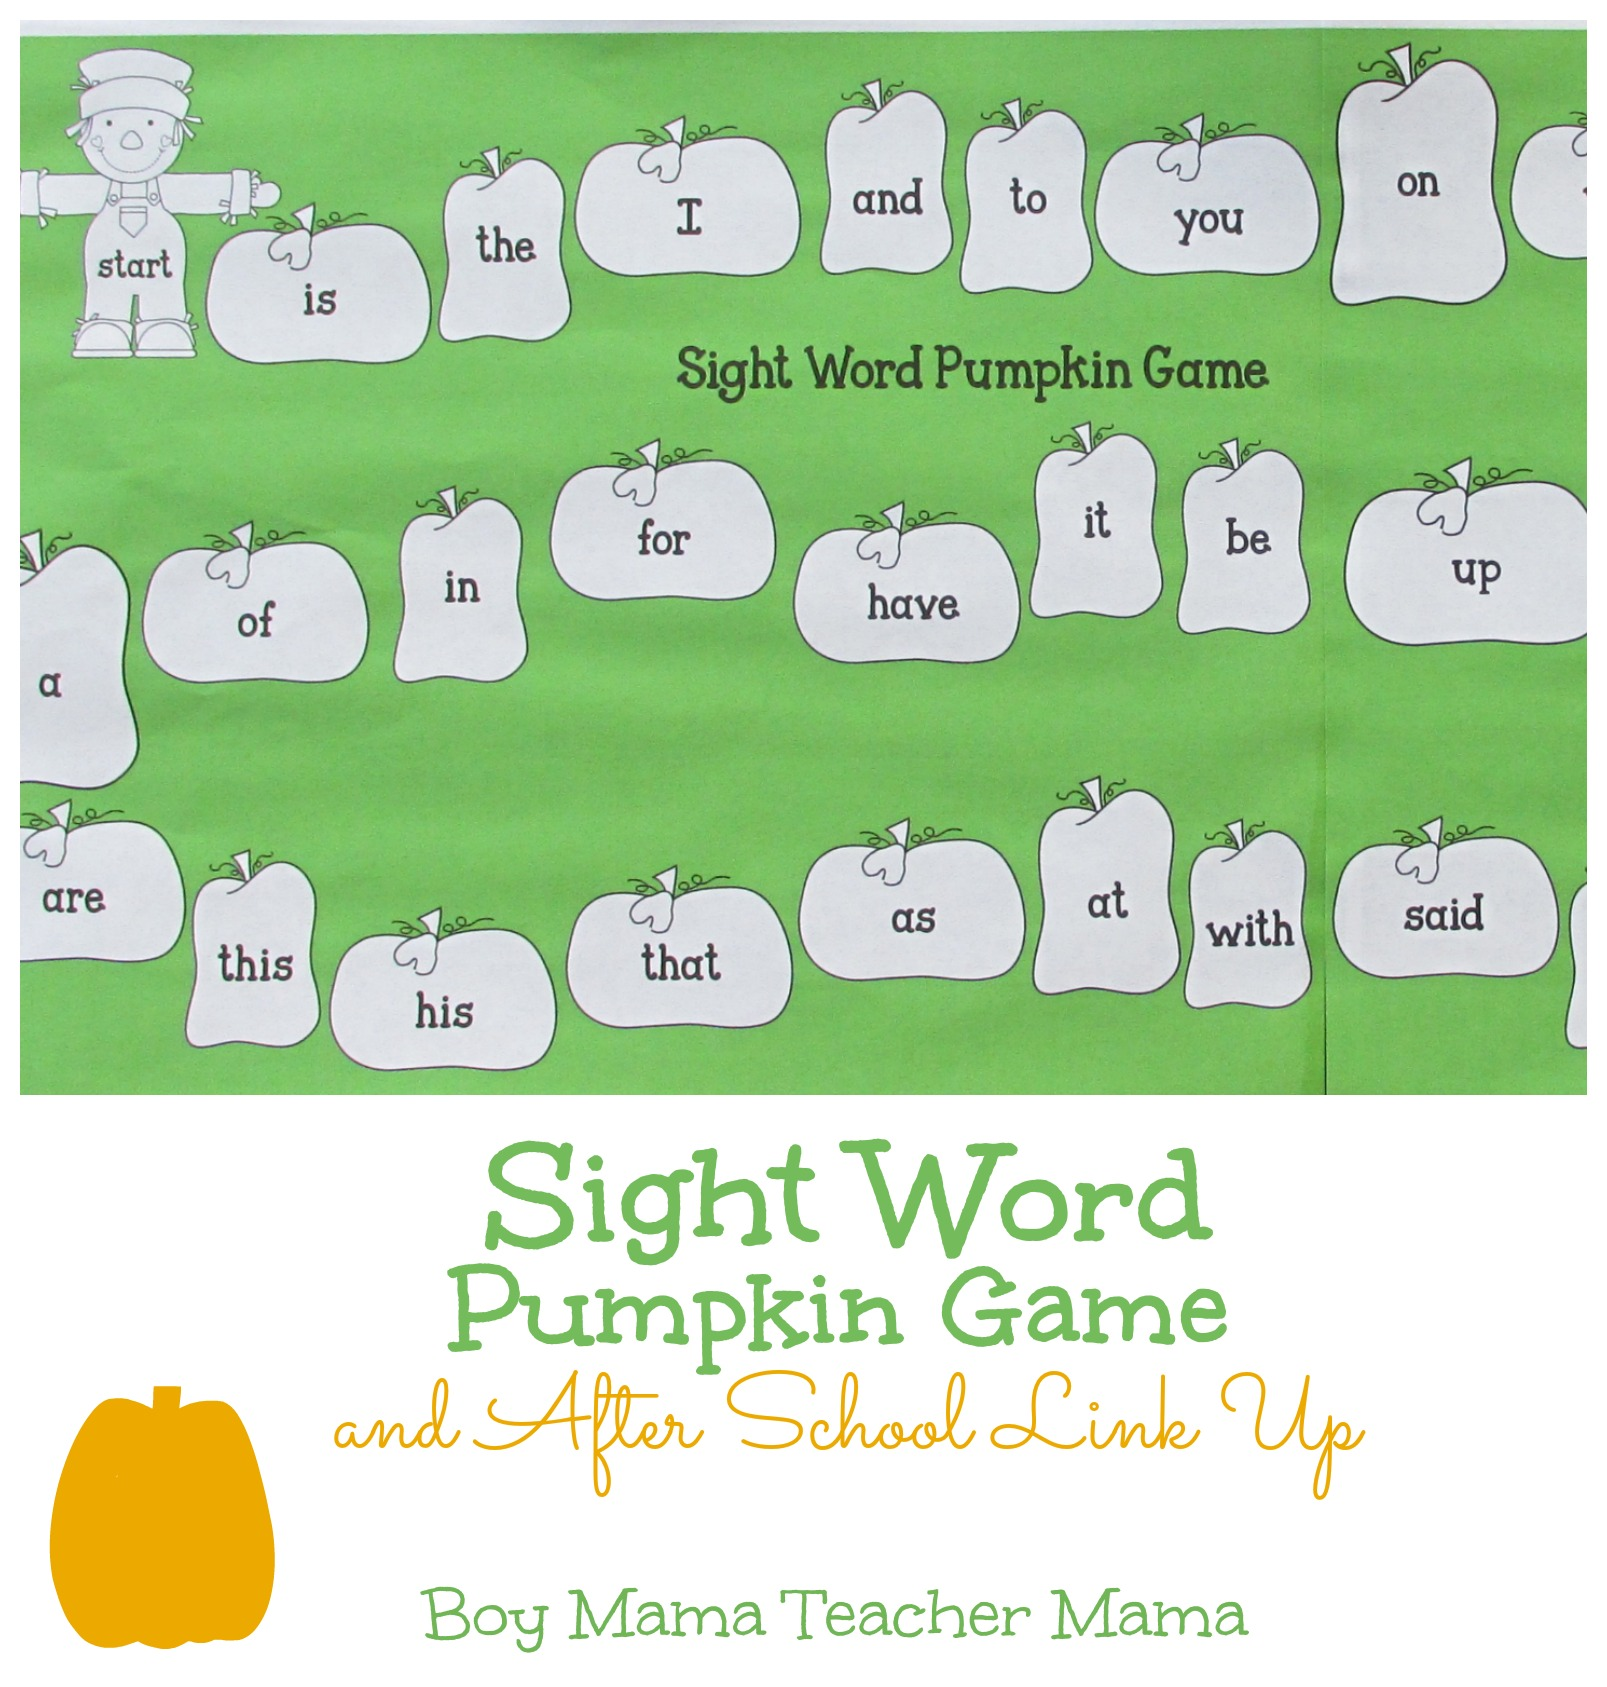 Teacher Mama: 5 Simple Game Boards For Sight Word Practice